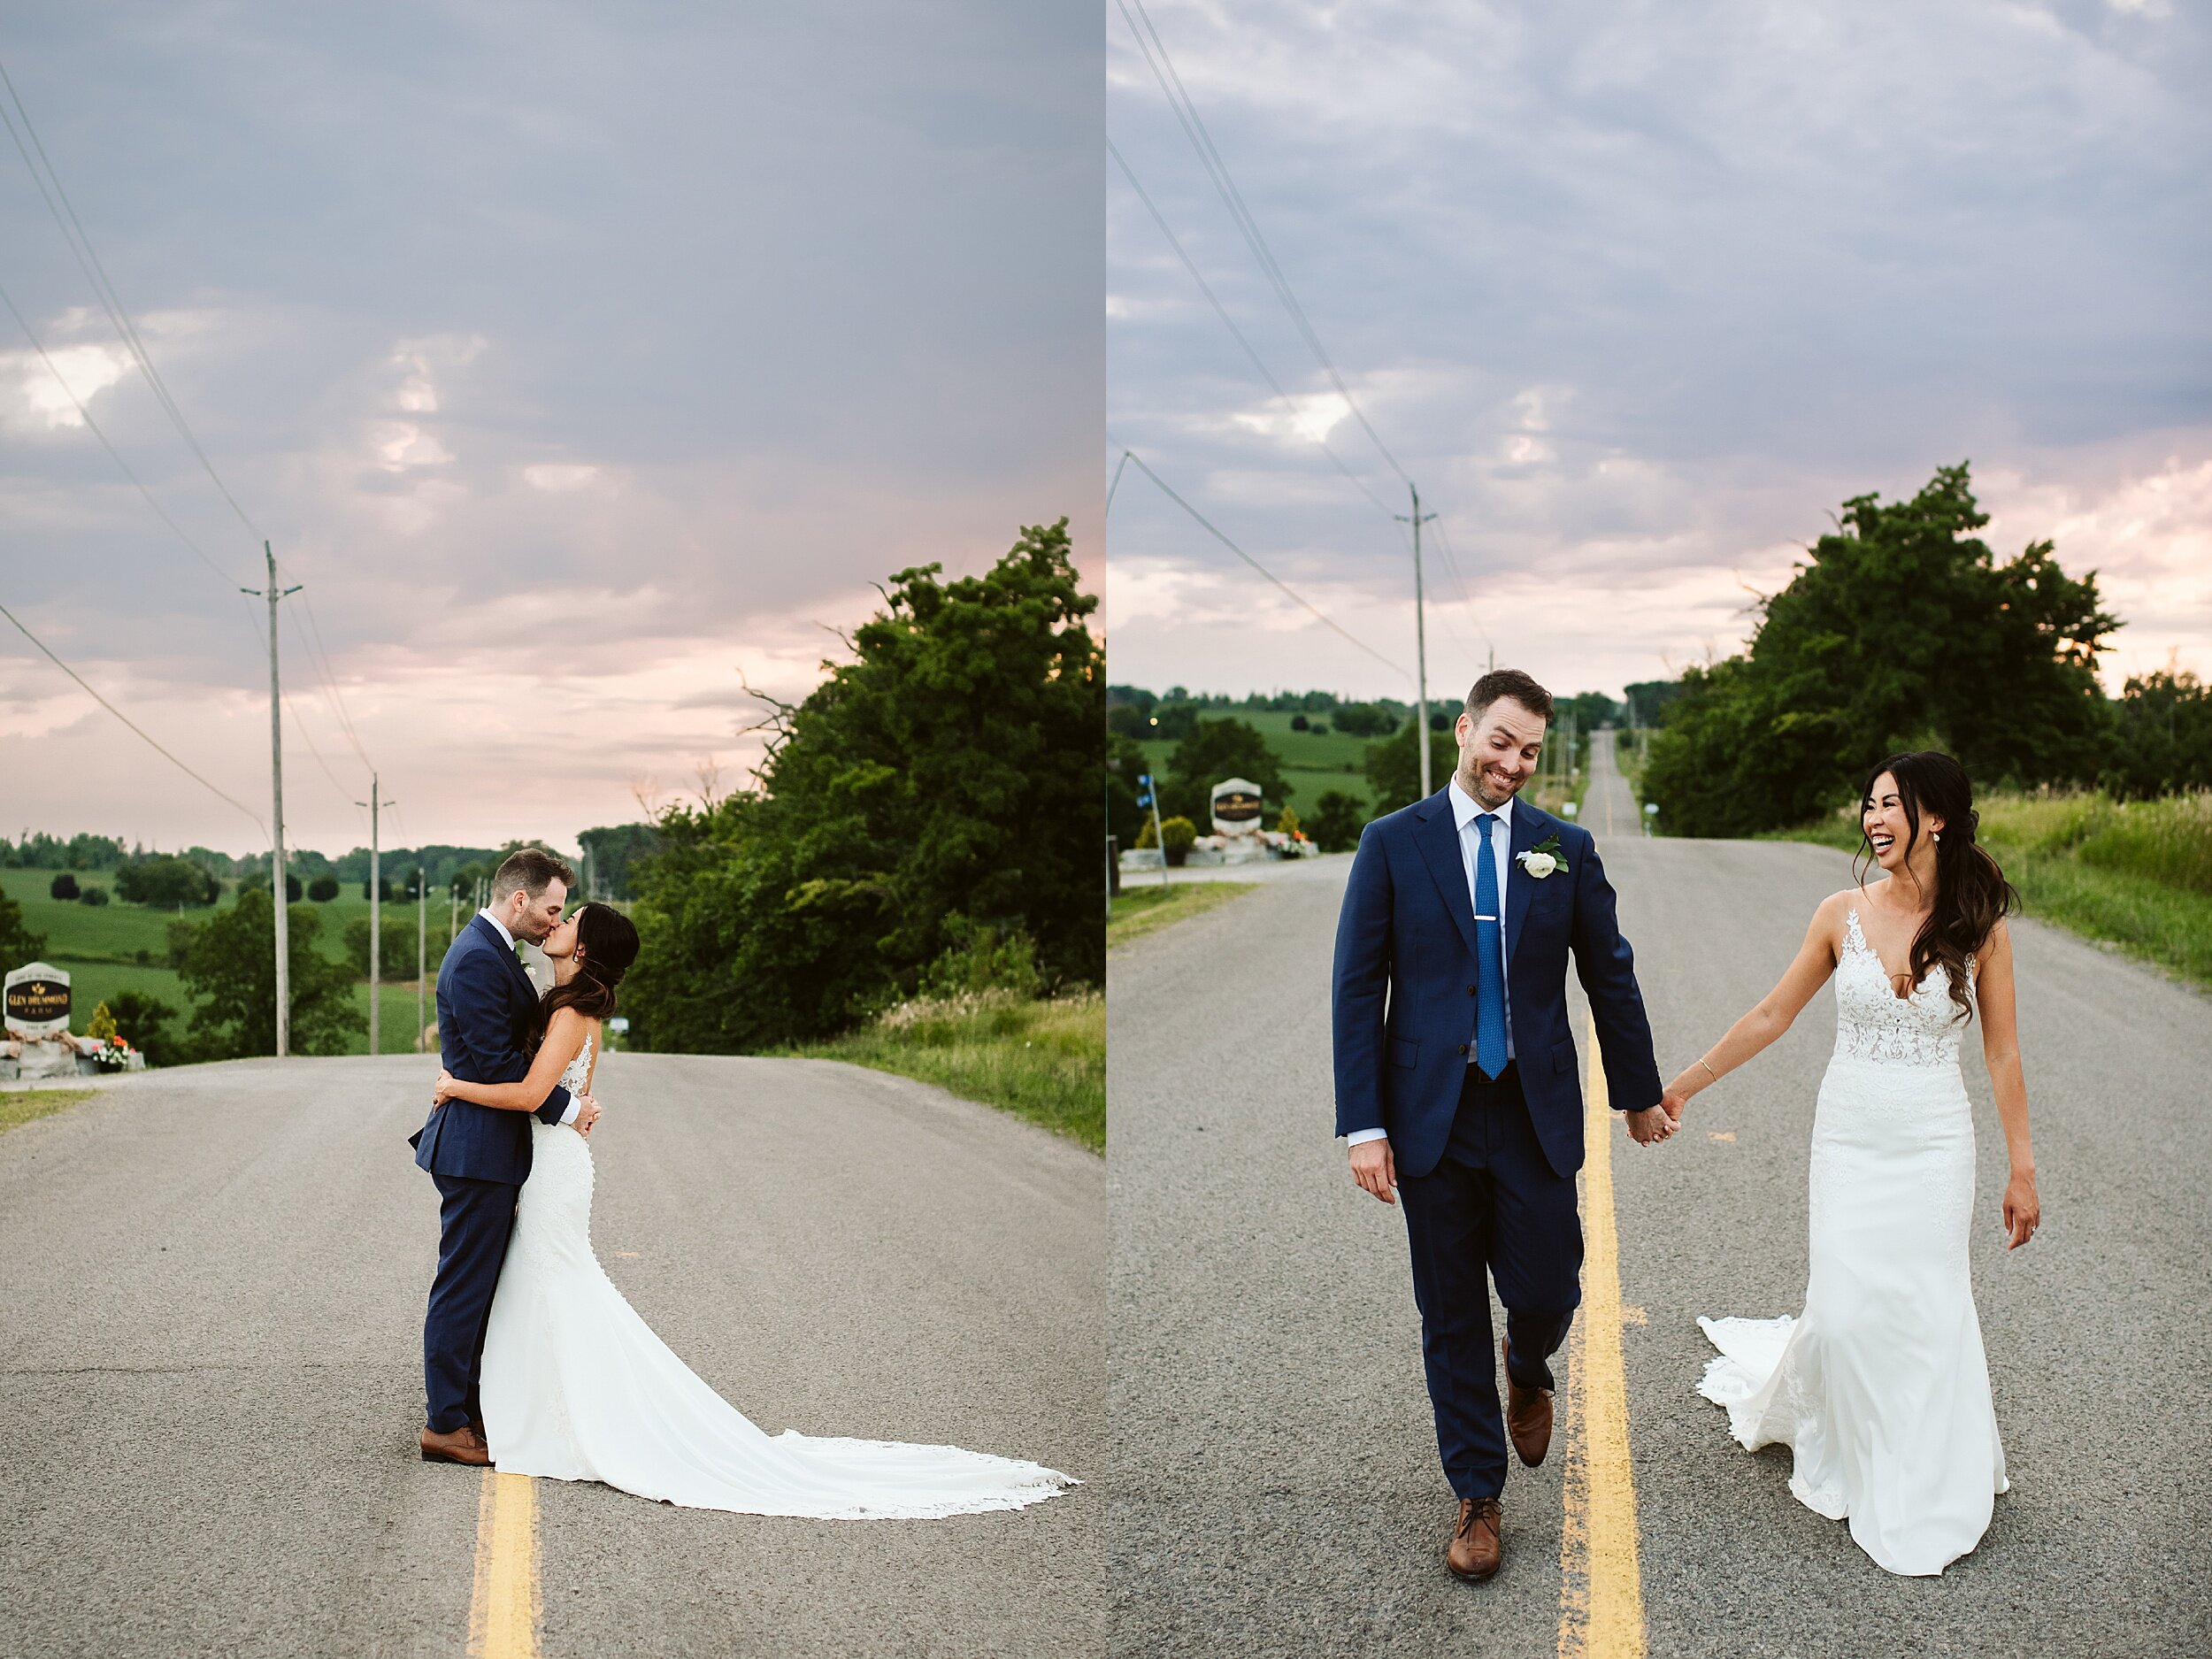 Glen_Drummon_Farm_Wedding_Toronto_Photographers_Fox_Photography_Dyments_0064.jpg